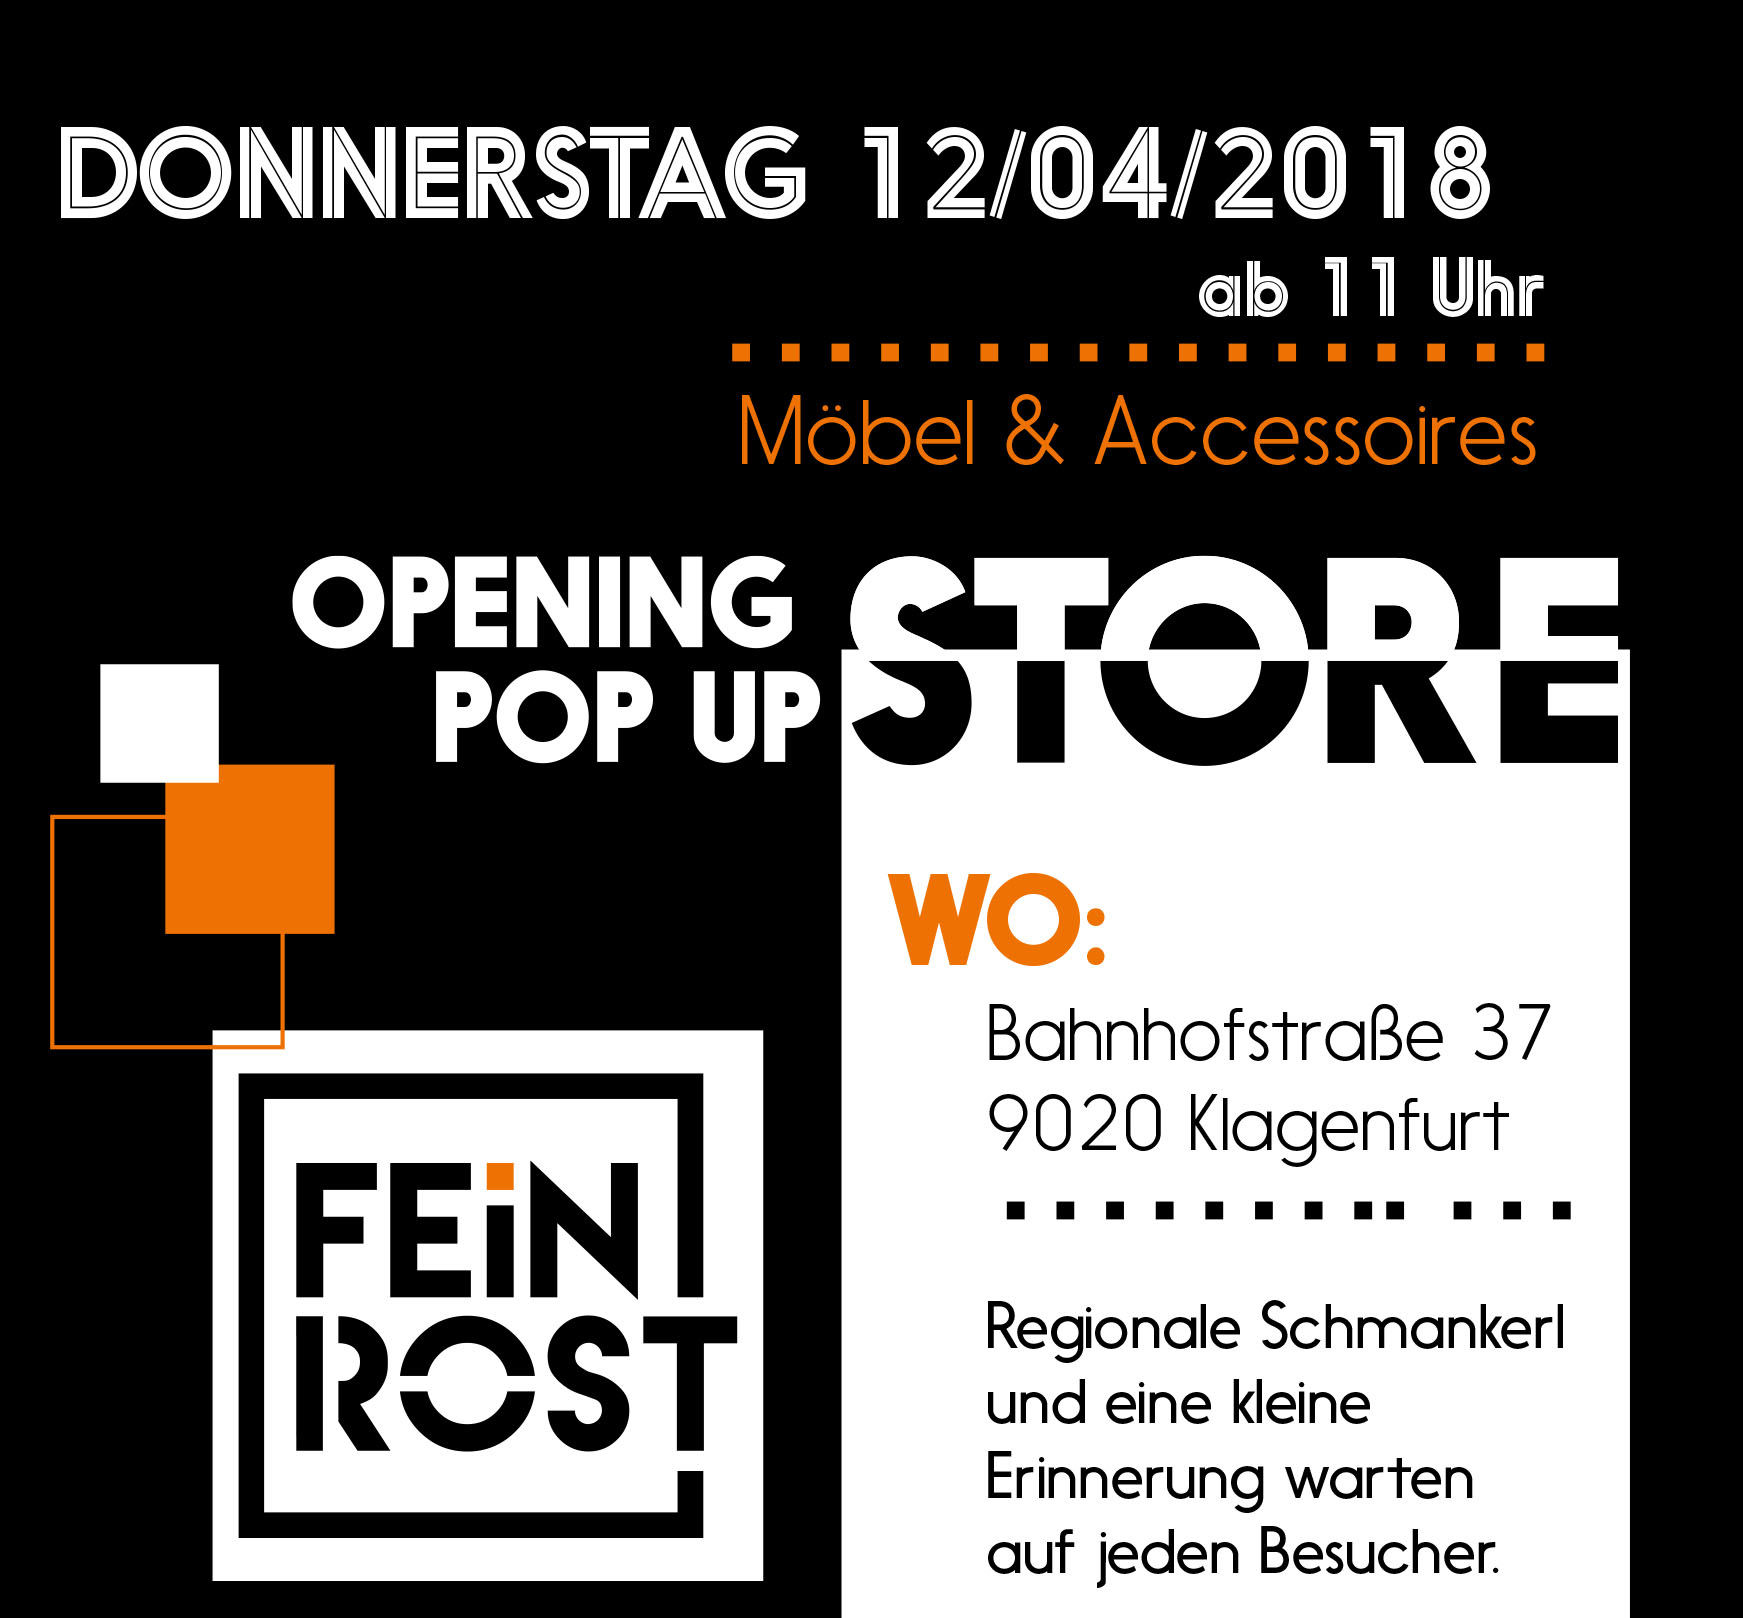 Feinrost Pop Up Store Klagenfurt